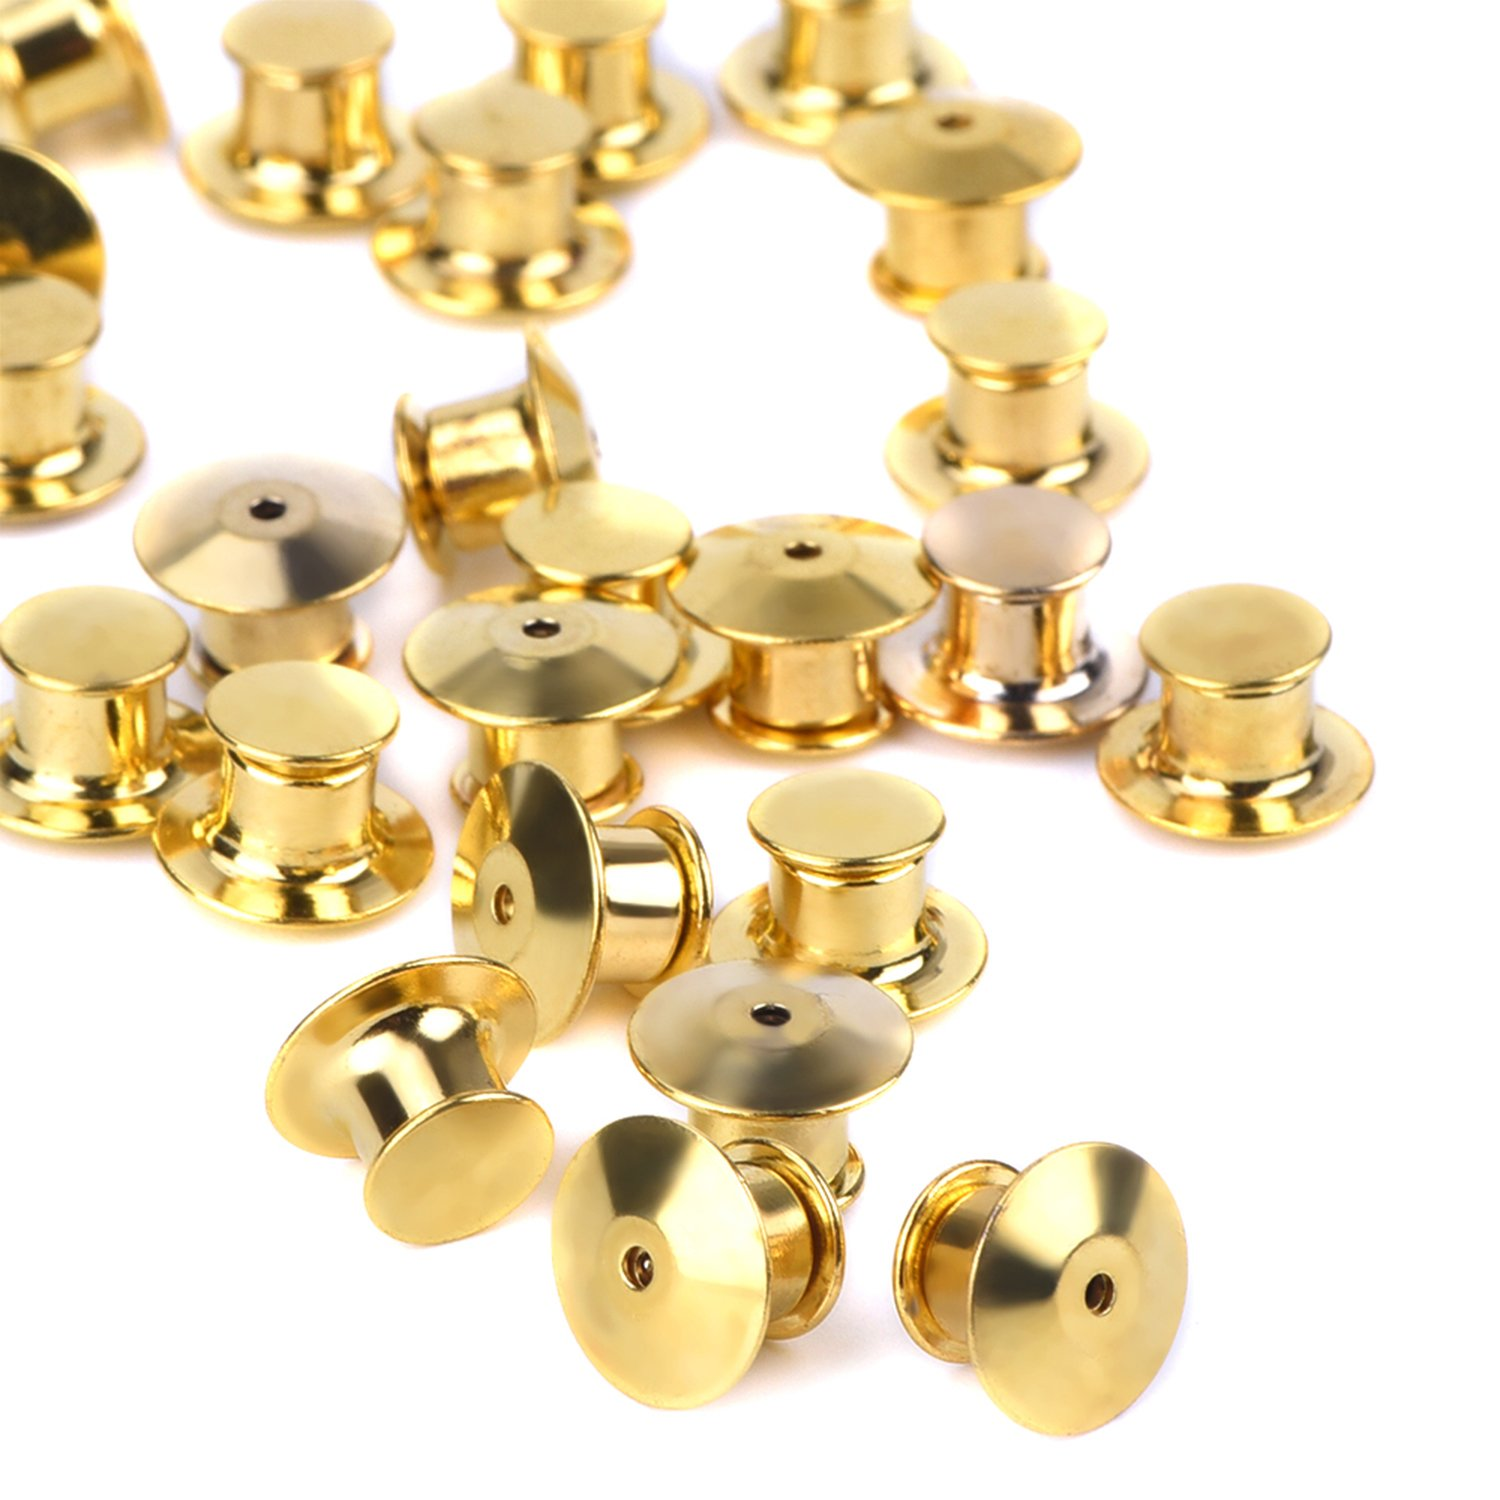 eBoot 30 Pieces Golden Locking Pin Keepers Backs, No Tool Required 4336833810